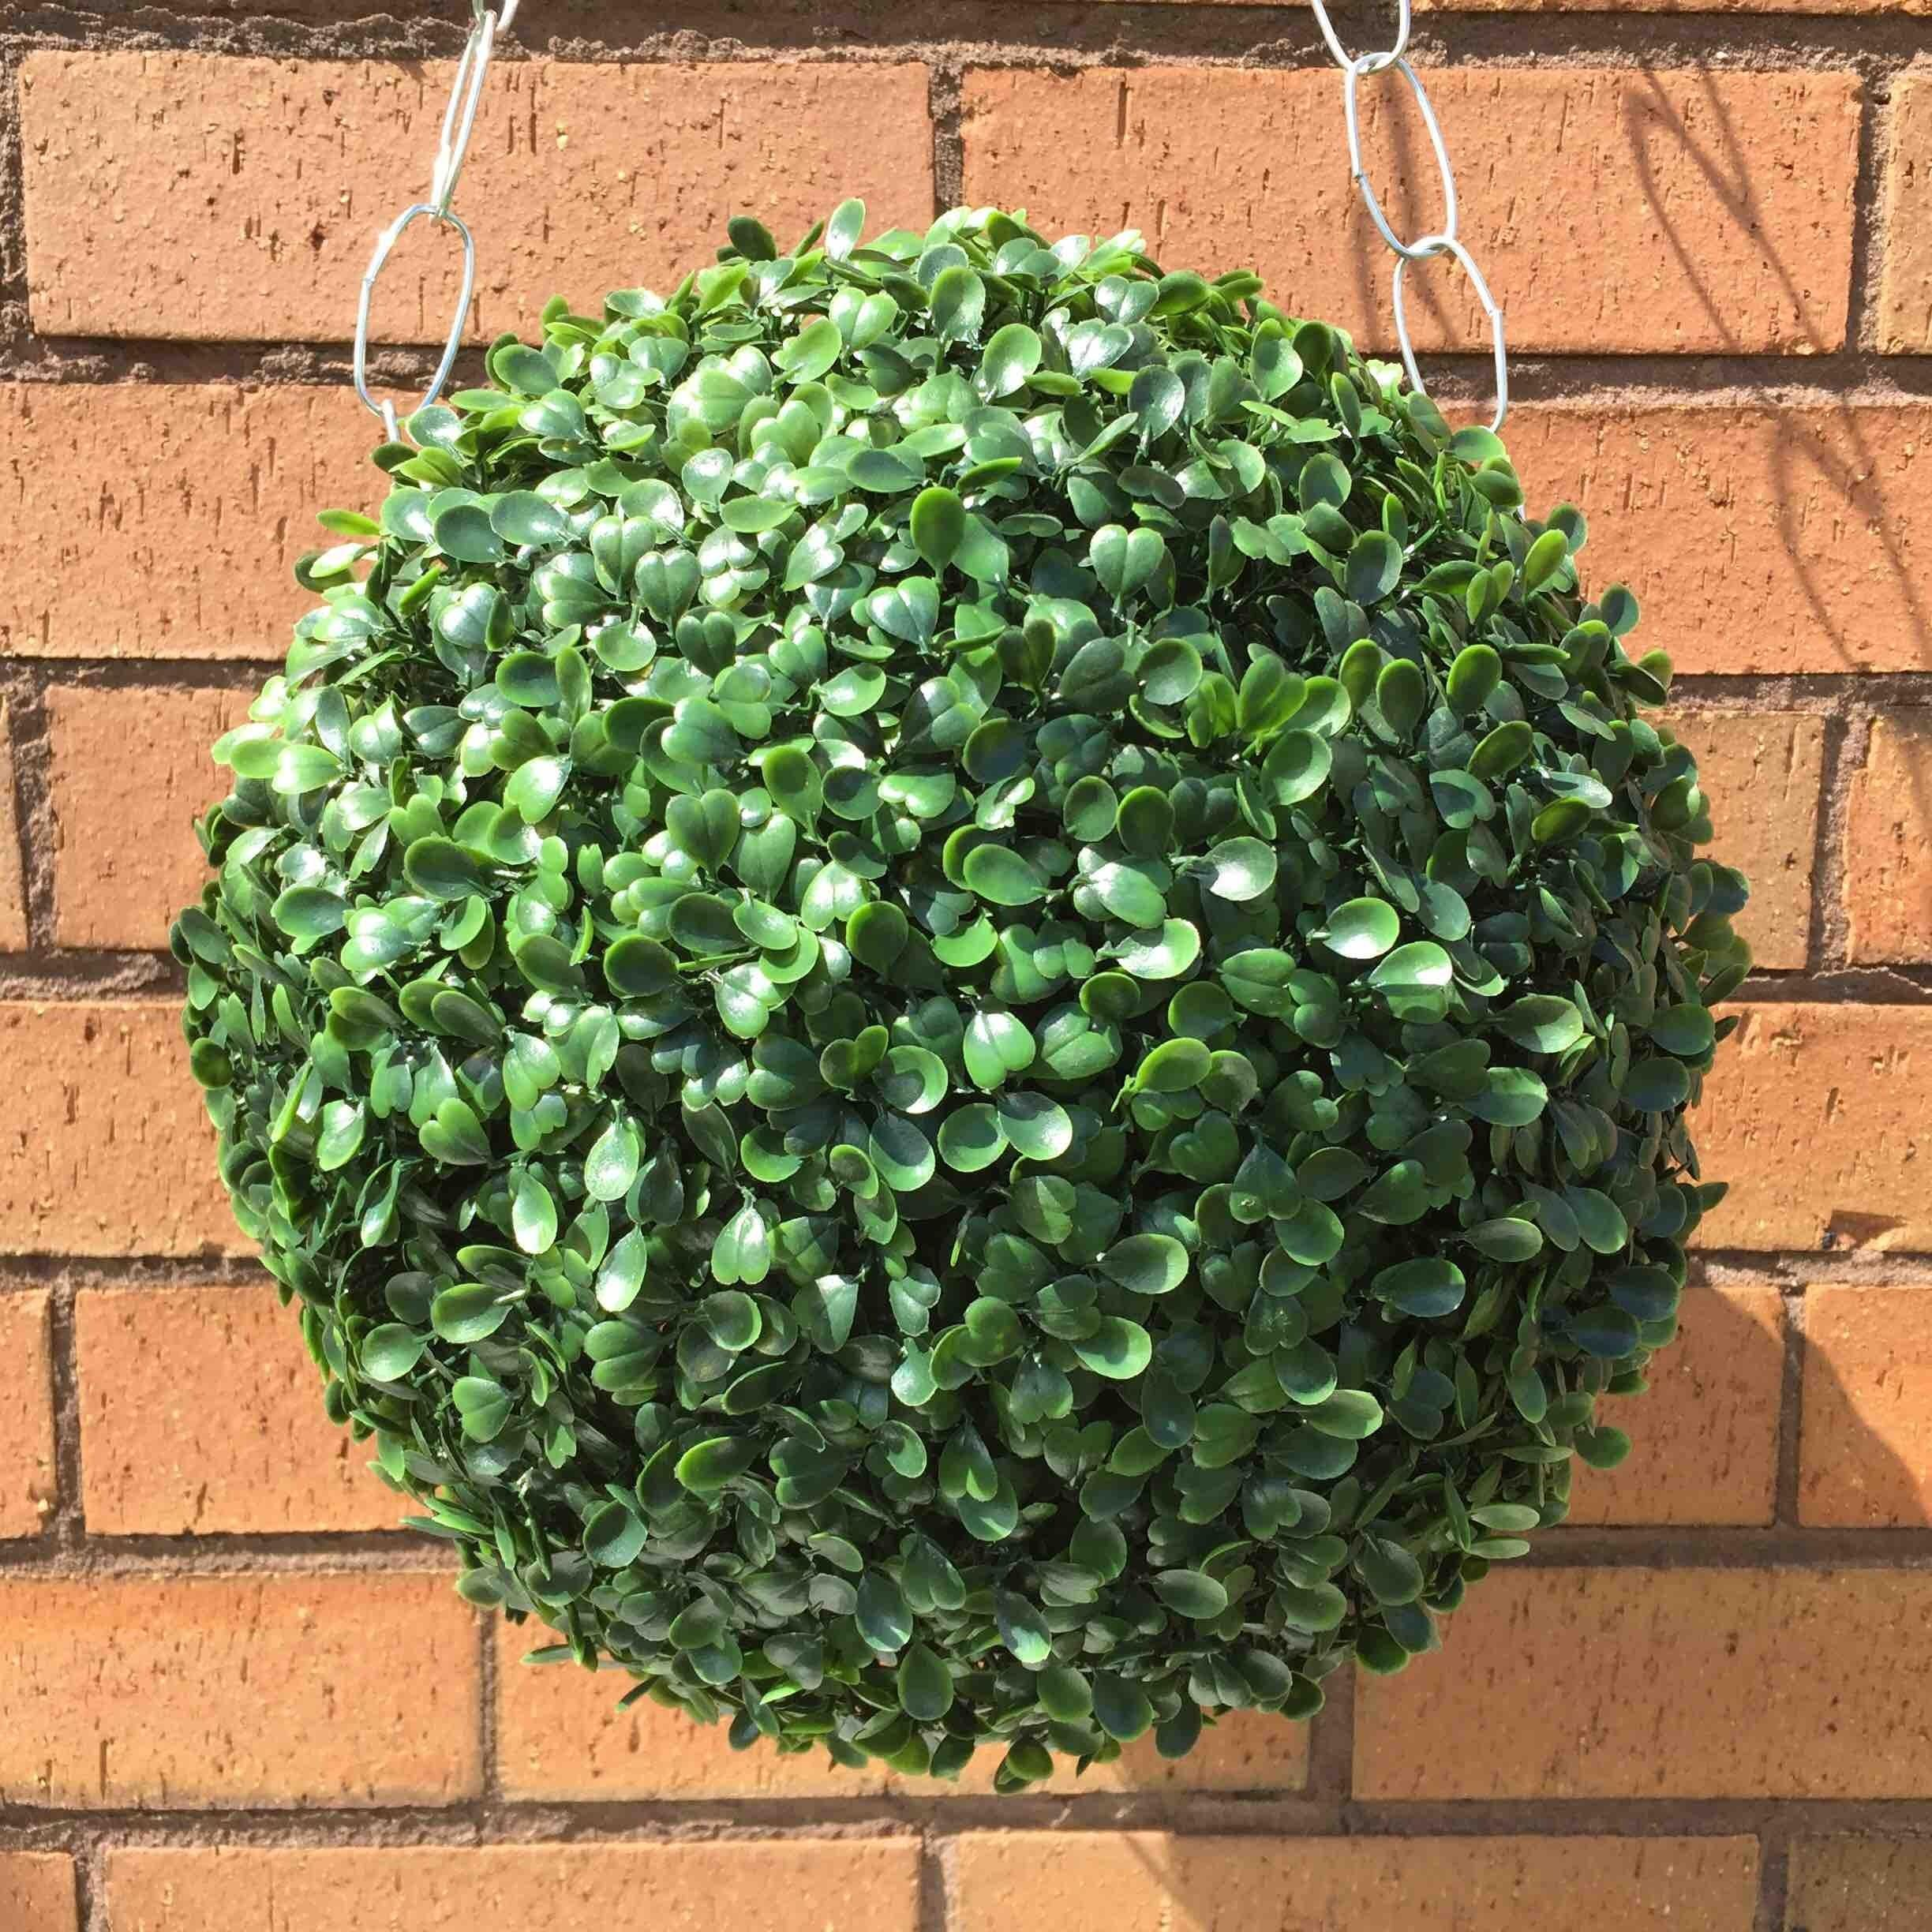 Wedding Home Outdoor Ornamental Artificial Plant Topiary Boxwood Ball Artificial Topiary Artificial Plants Topiary